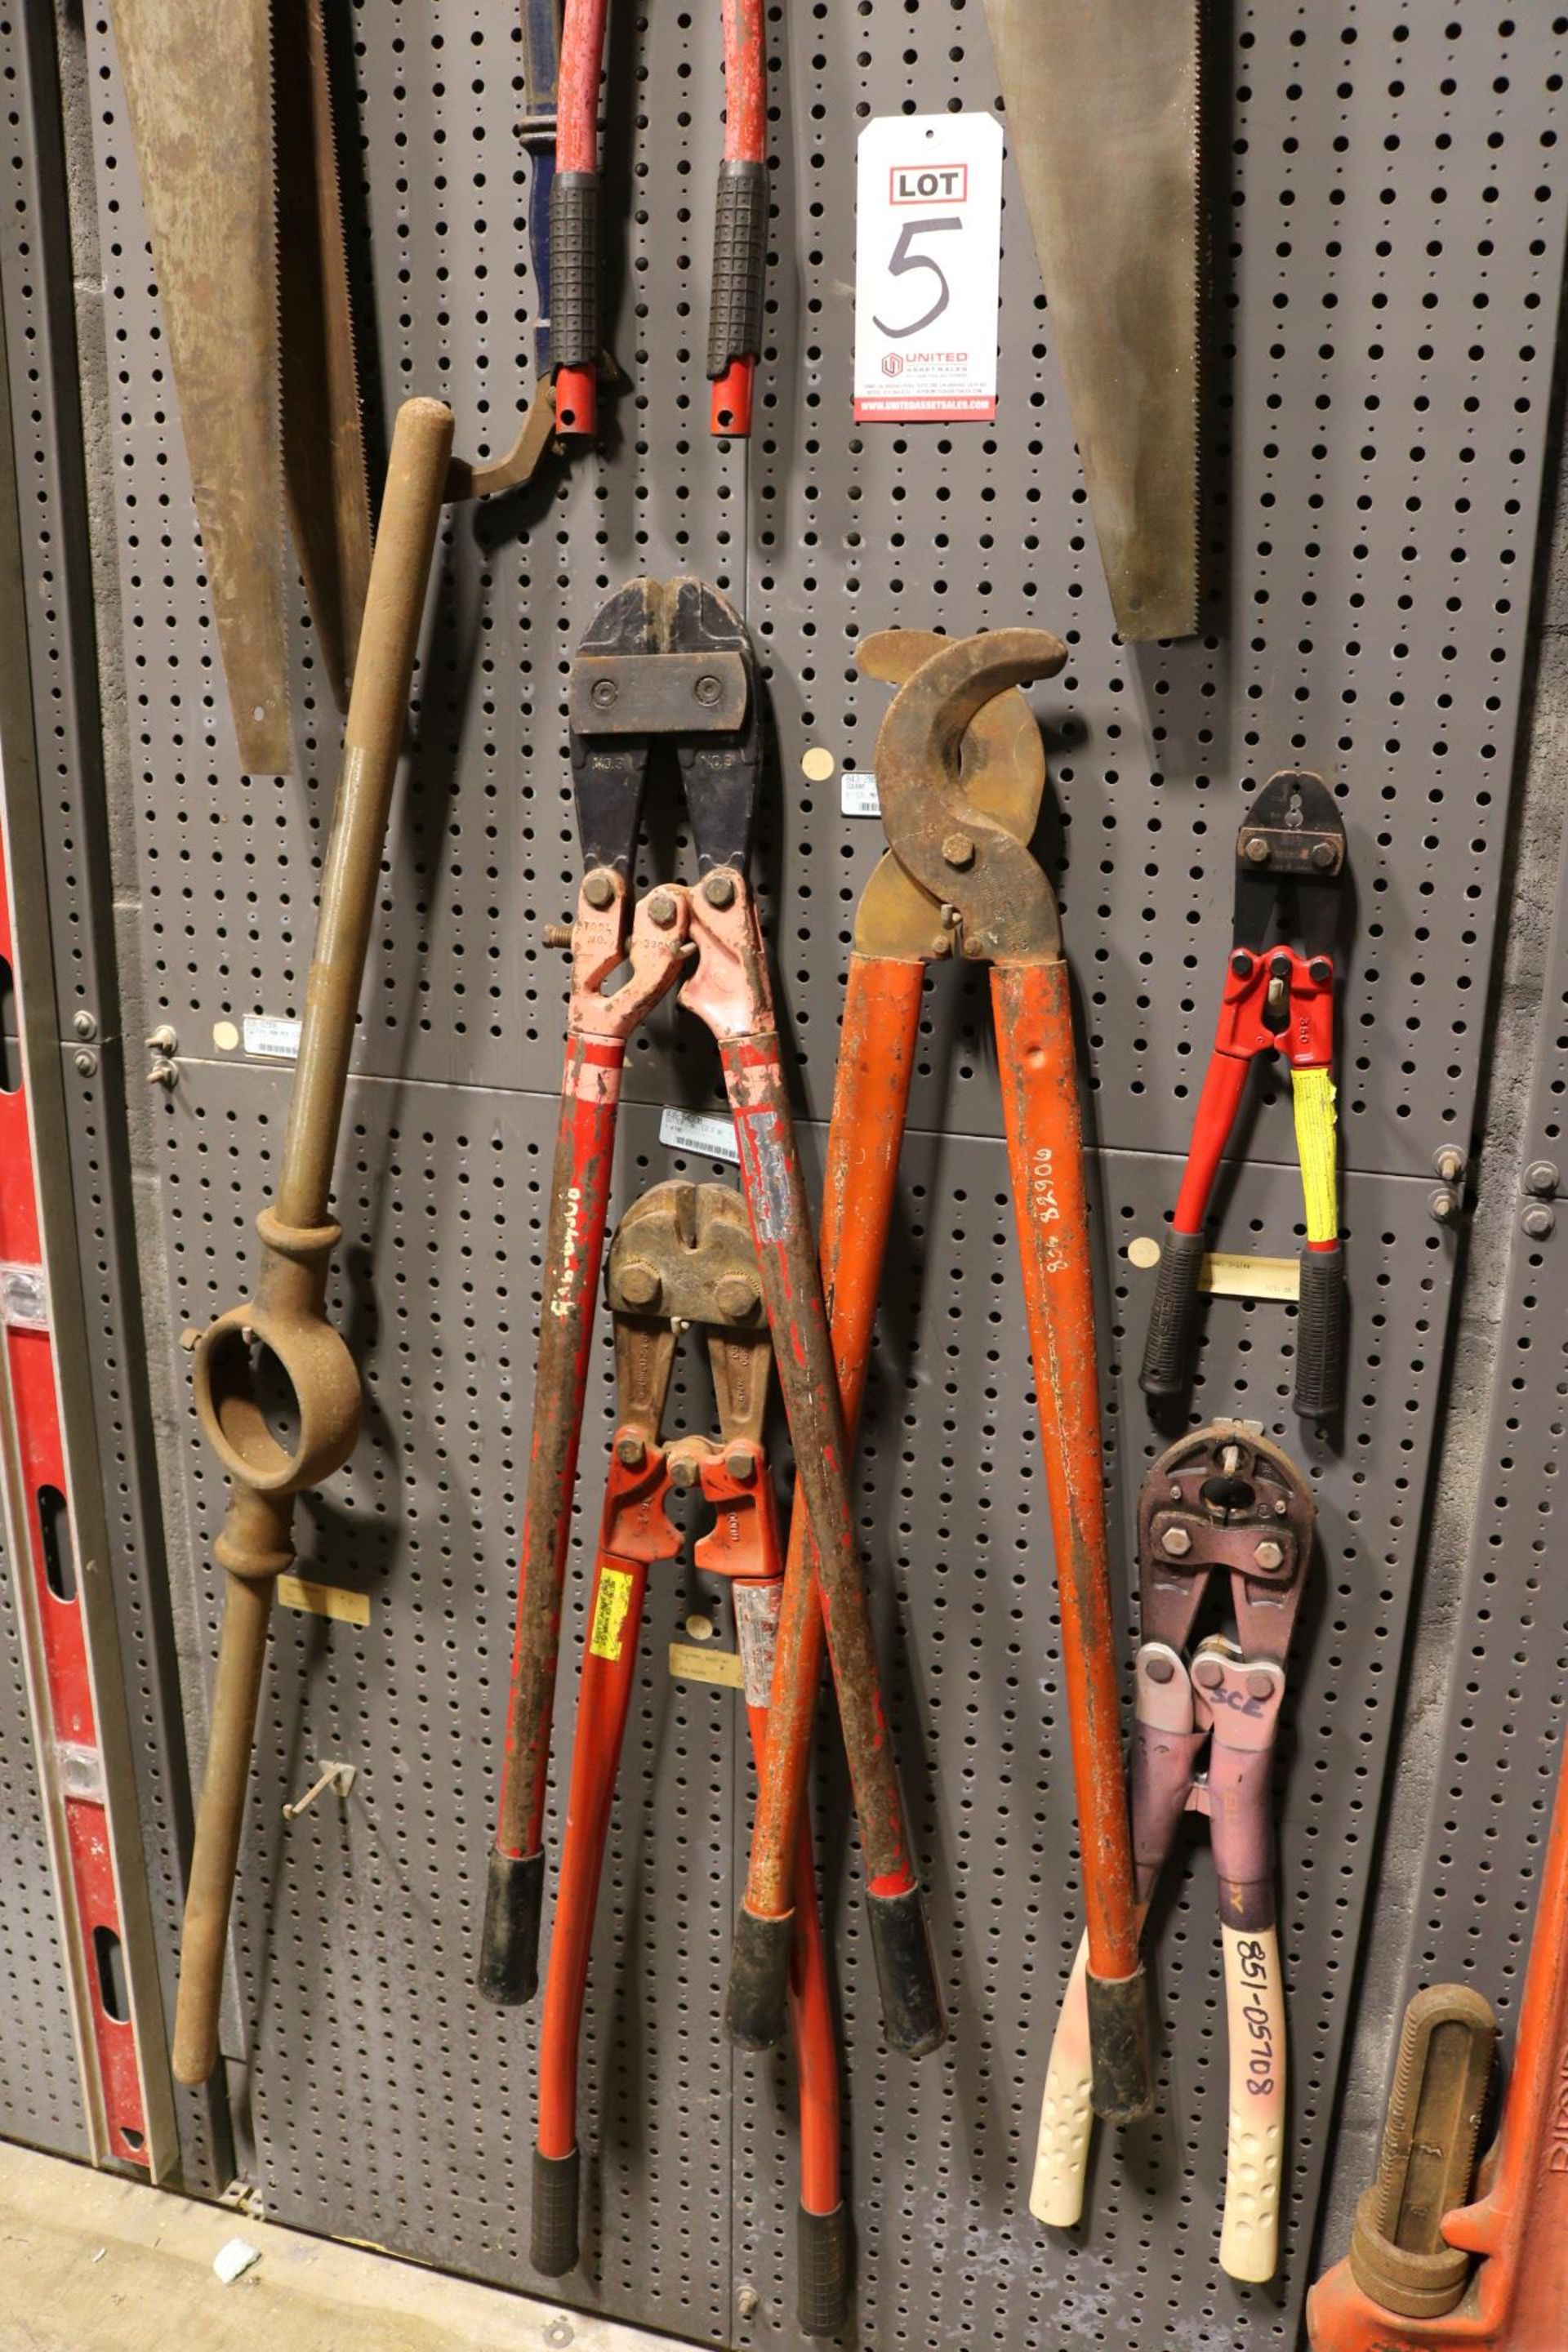 """Lot 5 - LOT - (1) SECTION OF STEEL PEG BOARD, 32"""" X 84"""", W/ CONTENTS: (3) BOLT CUTTERS, LOPPERS, CRIMPERS,"""